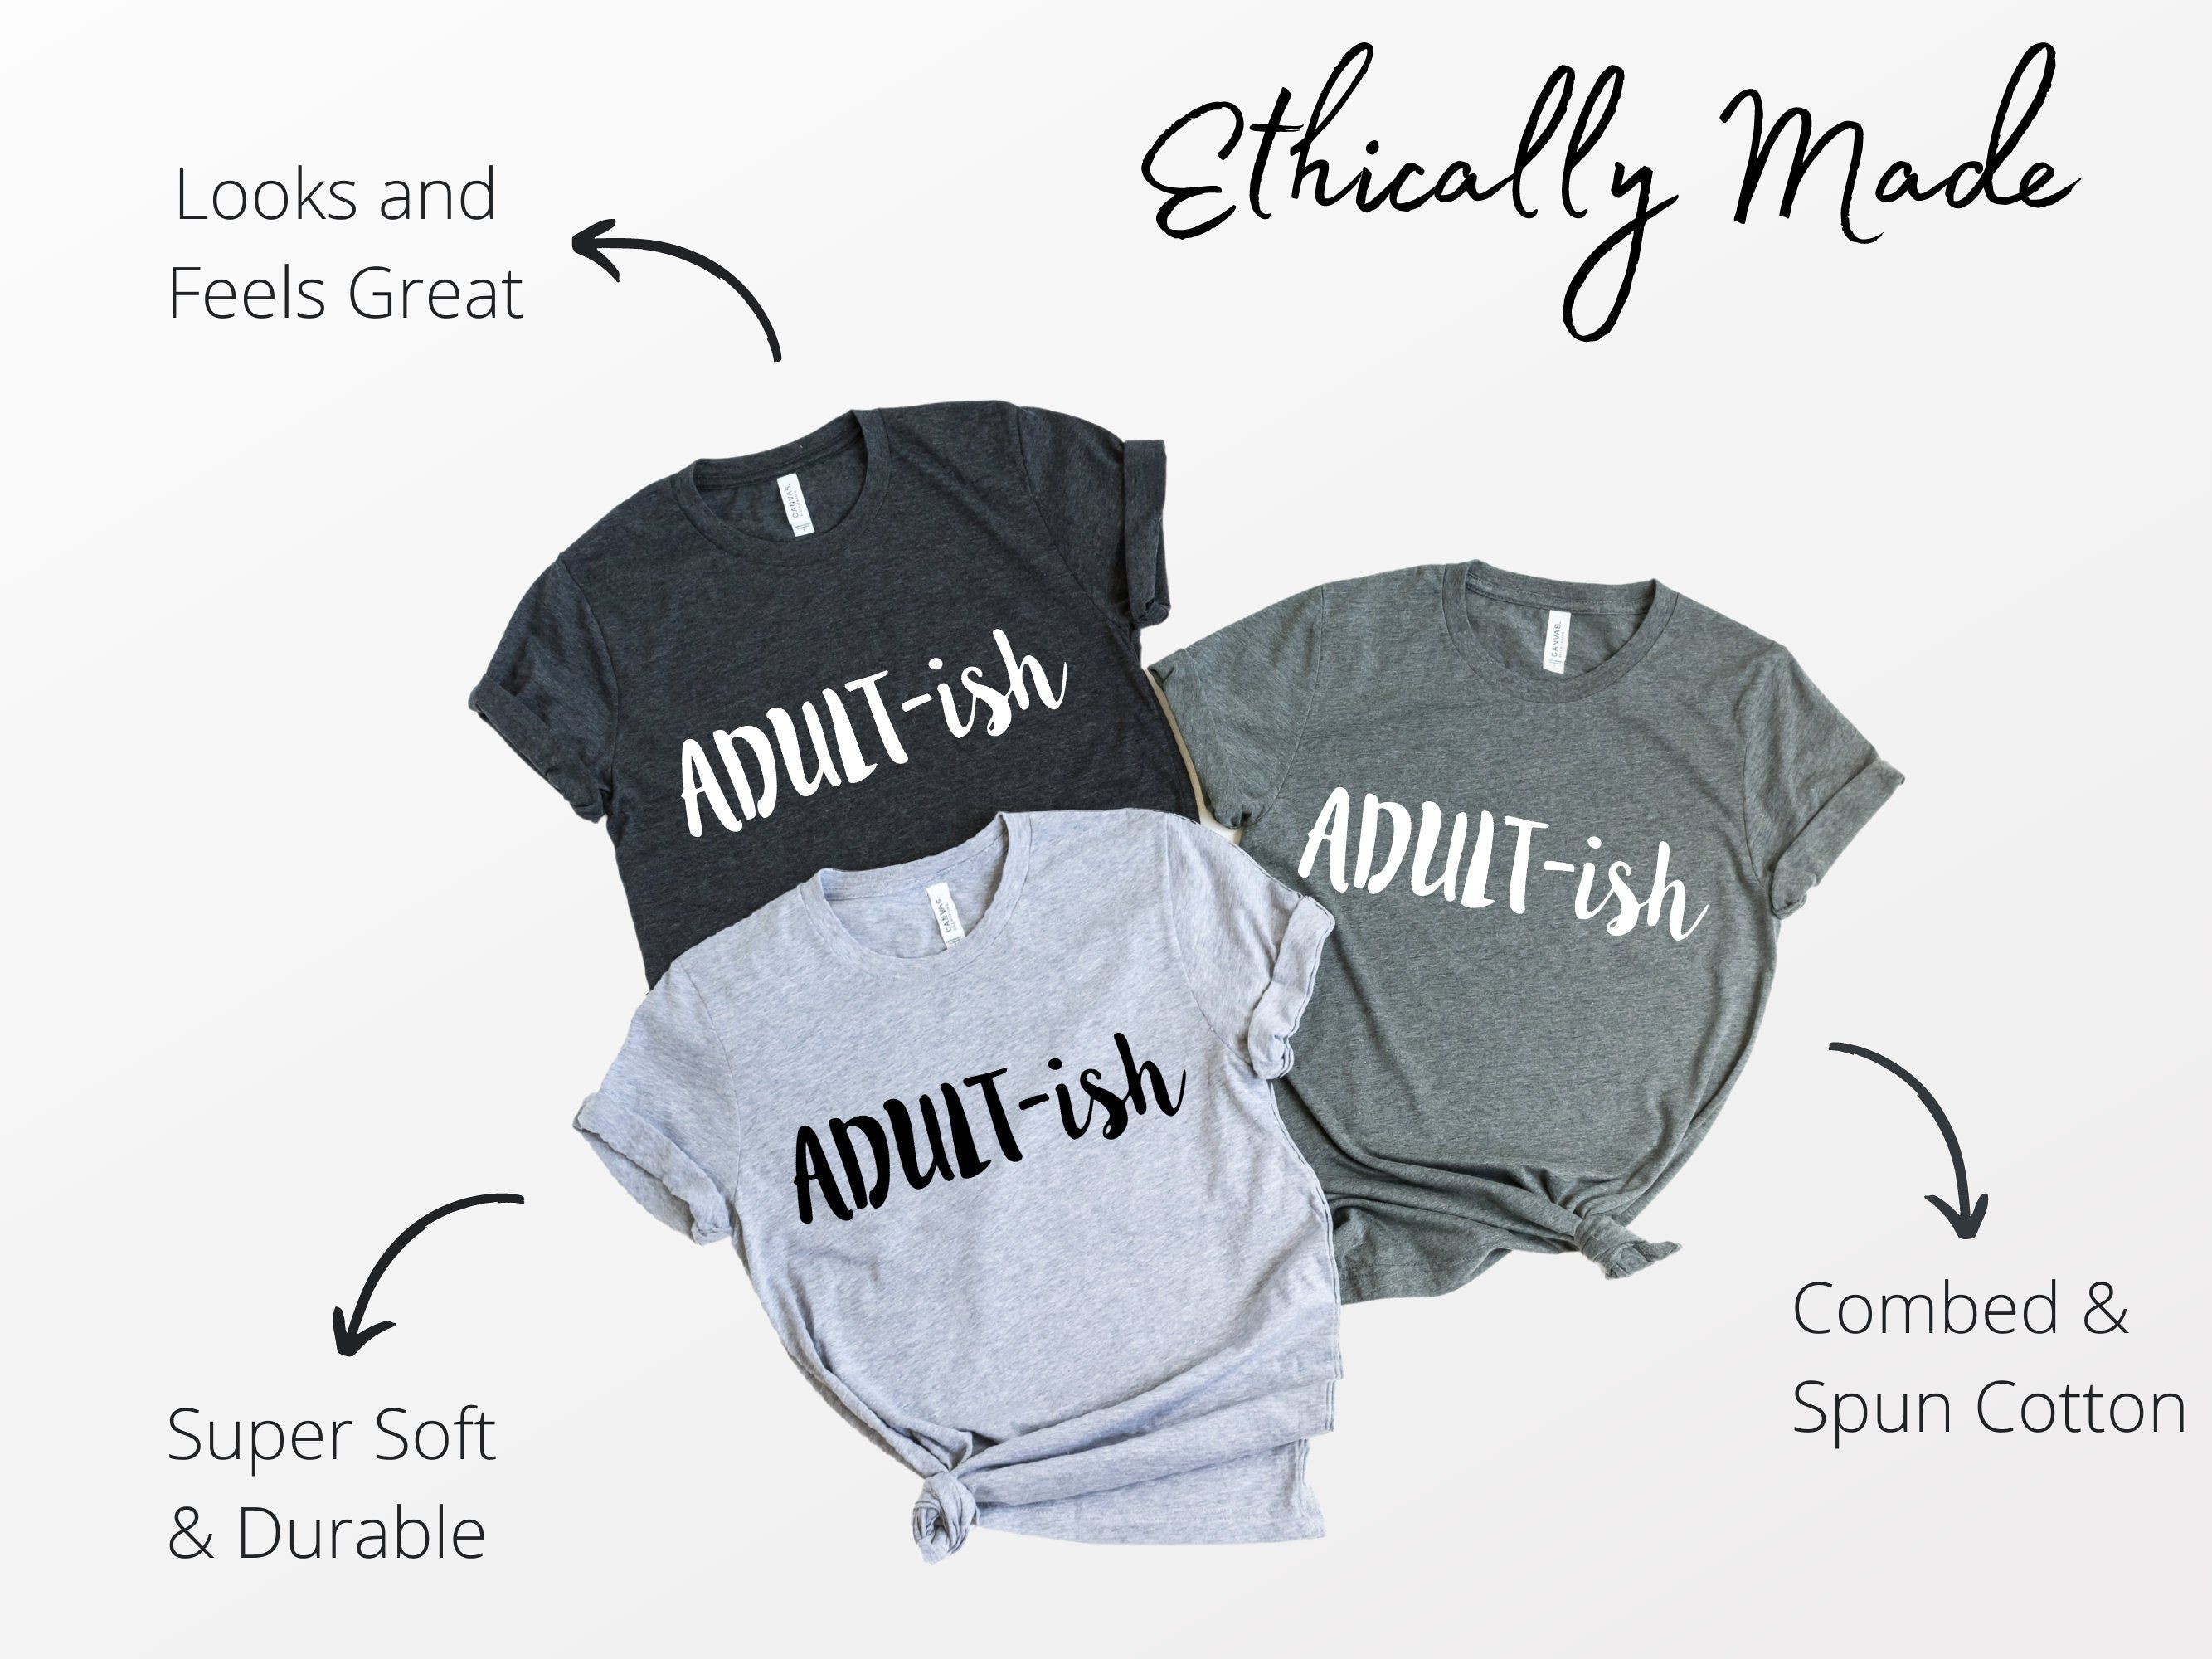 Funny Crewneck Shirt Gift, Adult-ish Tshirt, 18th Birthday T-Shirt, Adulting Tee, Unisex Shirt, Gift for Him, Gift for Her